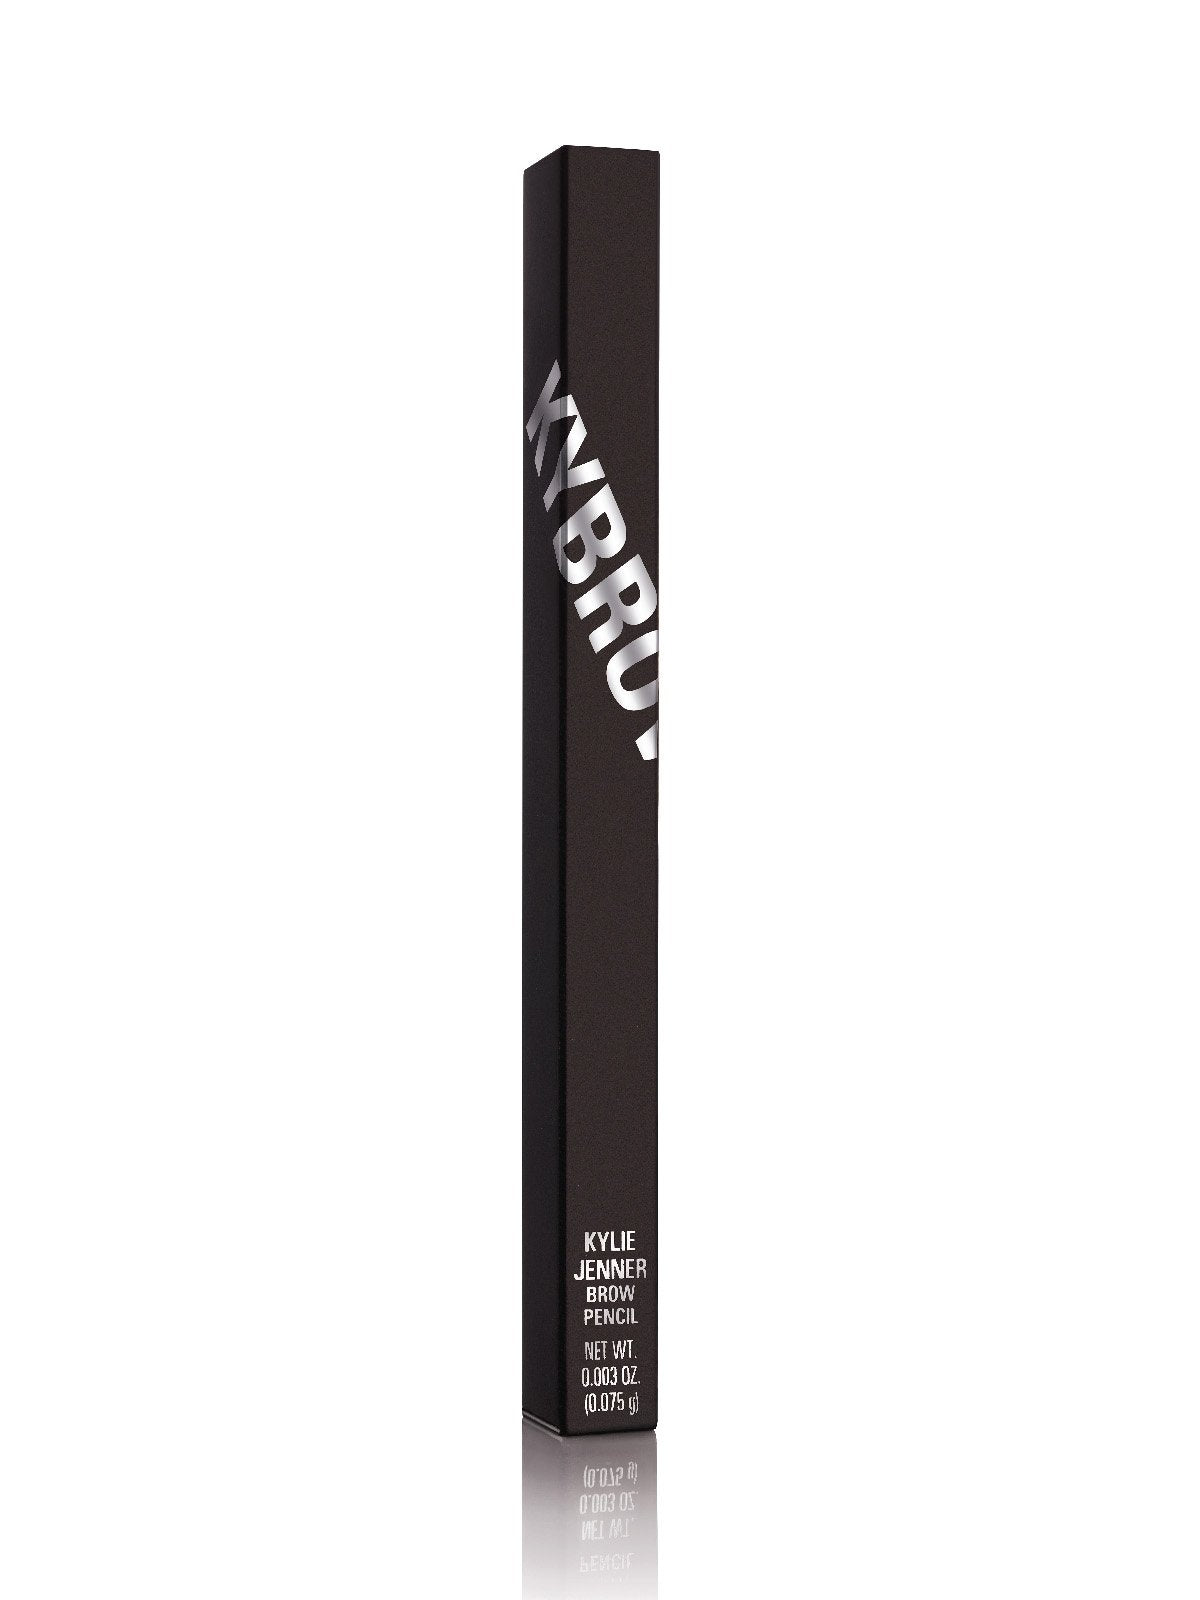 Medium Brown | Brow Pencil